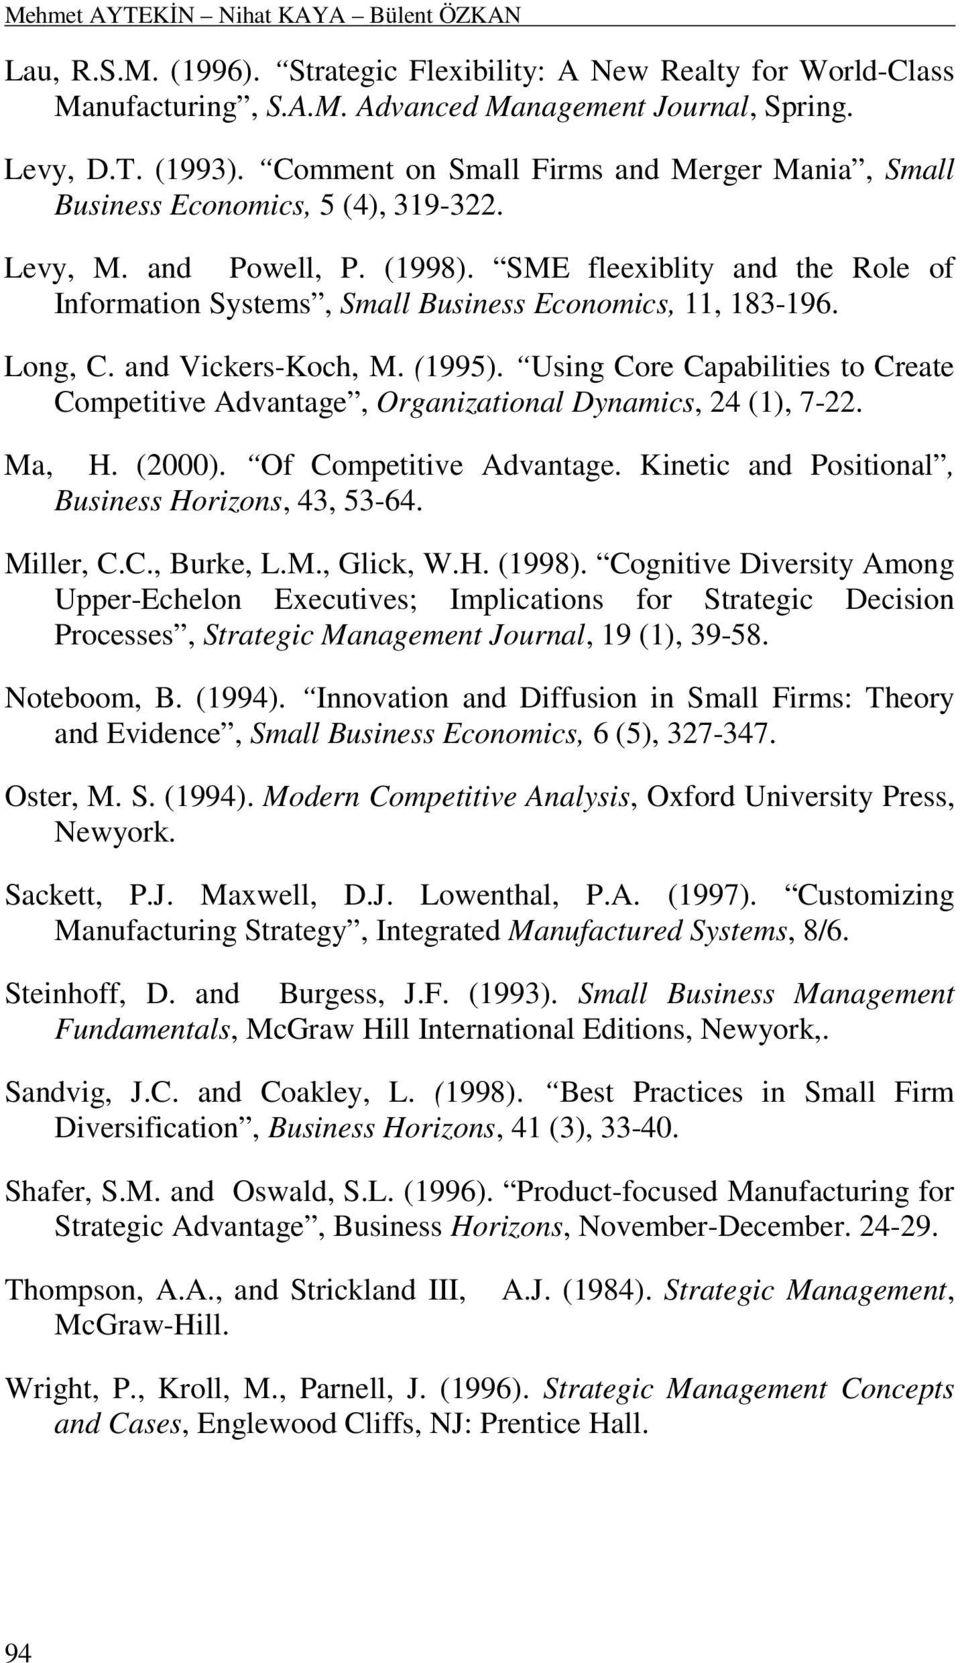 SME fleexiblity and the Role of Information Systems, Small Business Economics, 11, 183-196. Long, C. and Vickers-Koch, M. (1995).